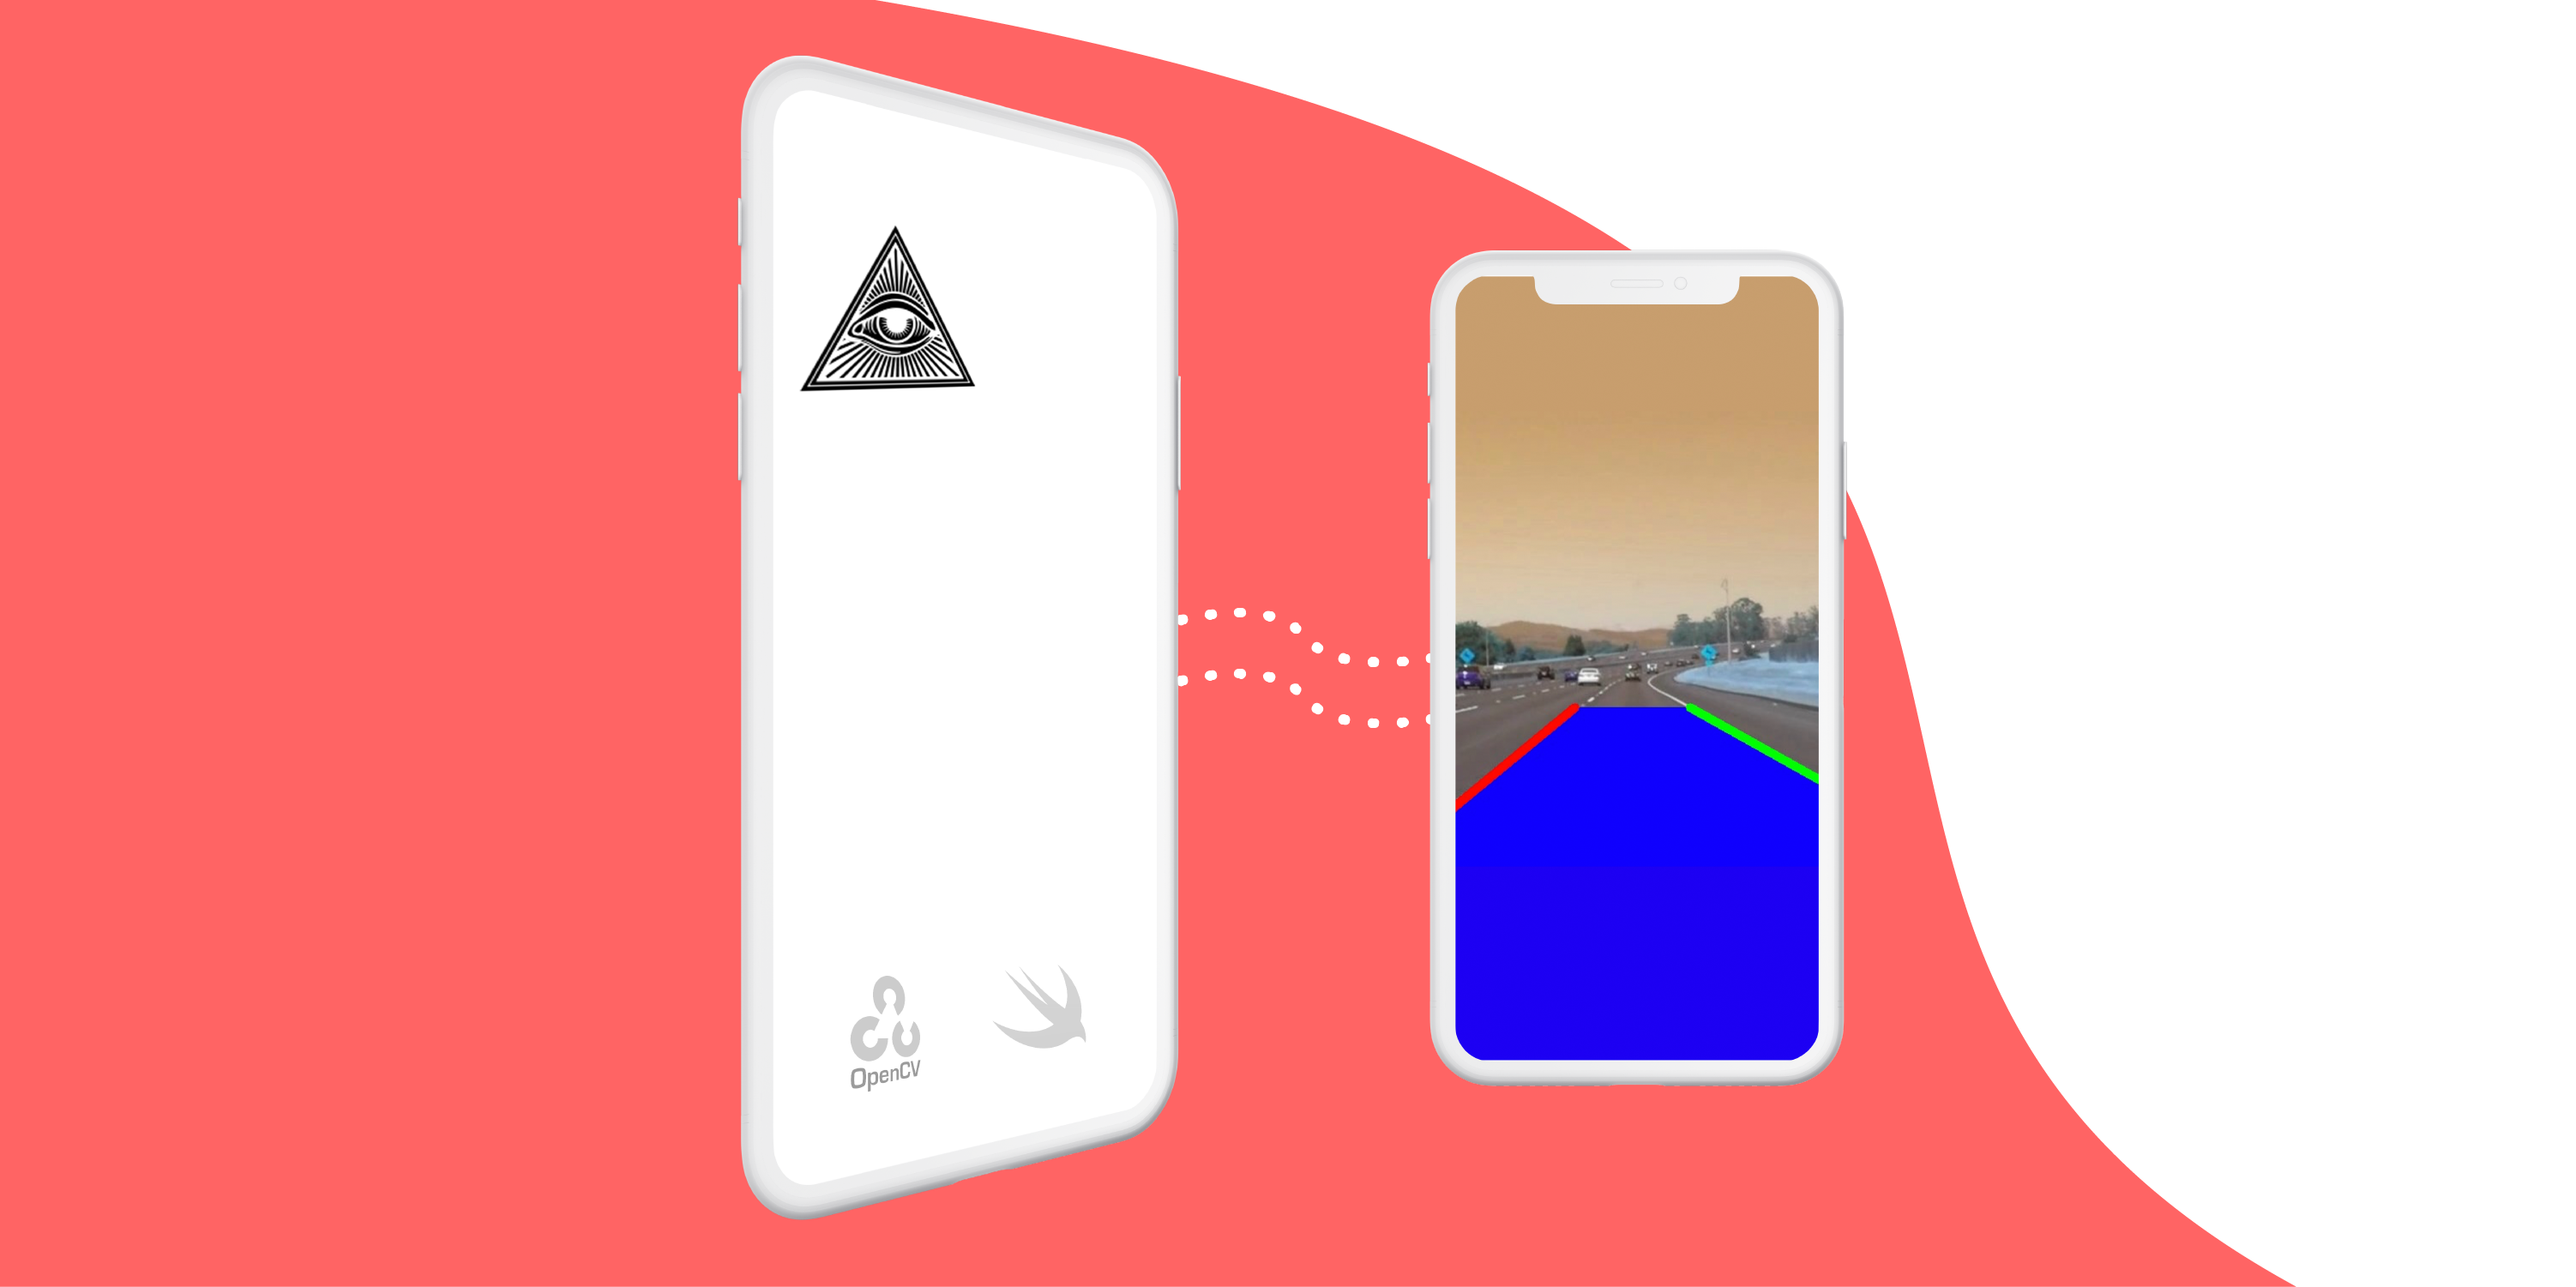 Building a simple lane detection iOS app using OpenCV